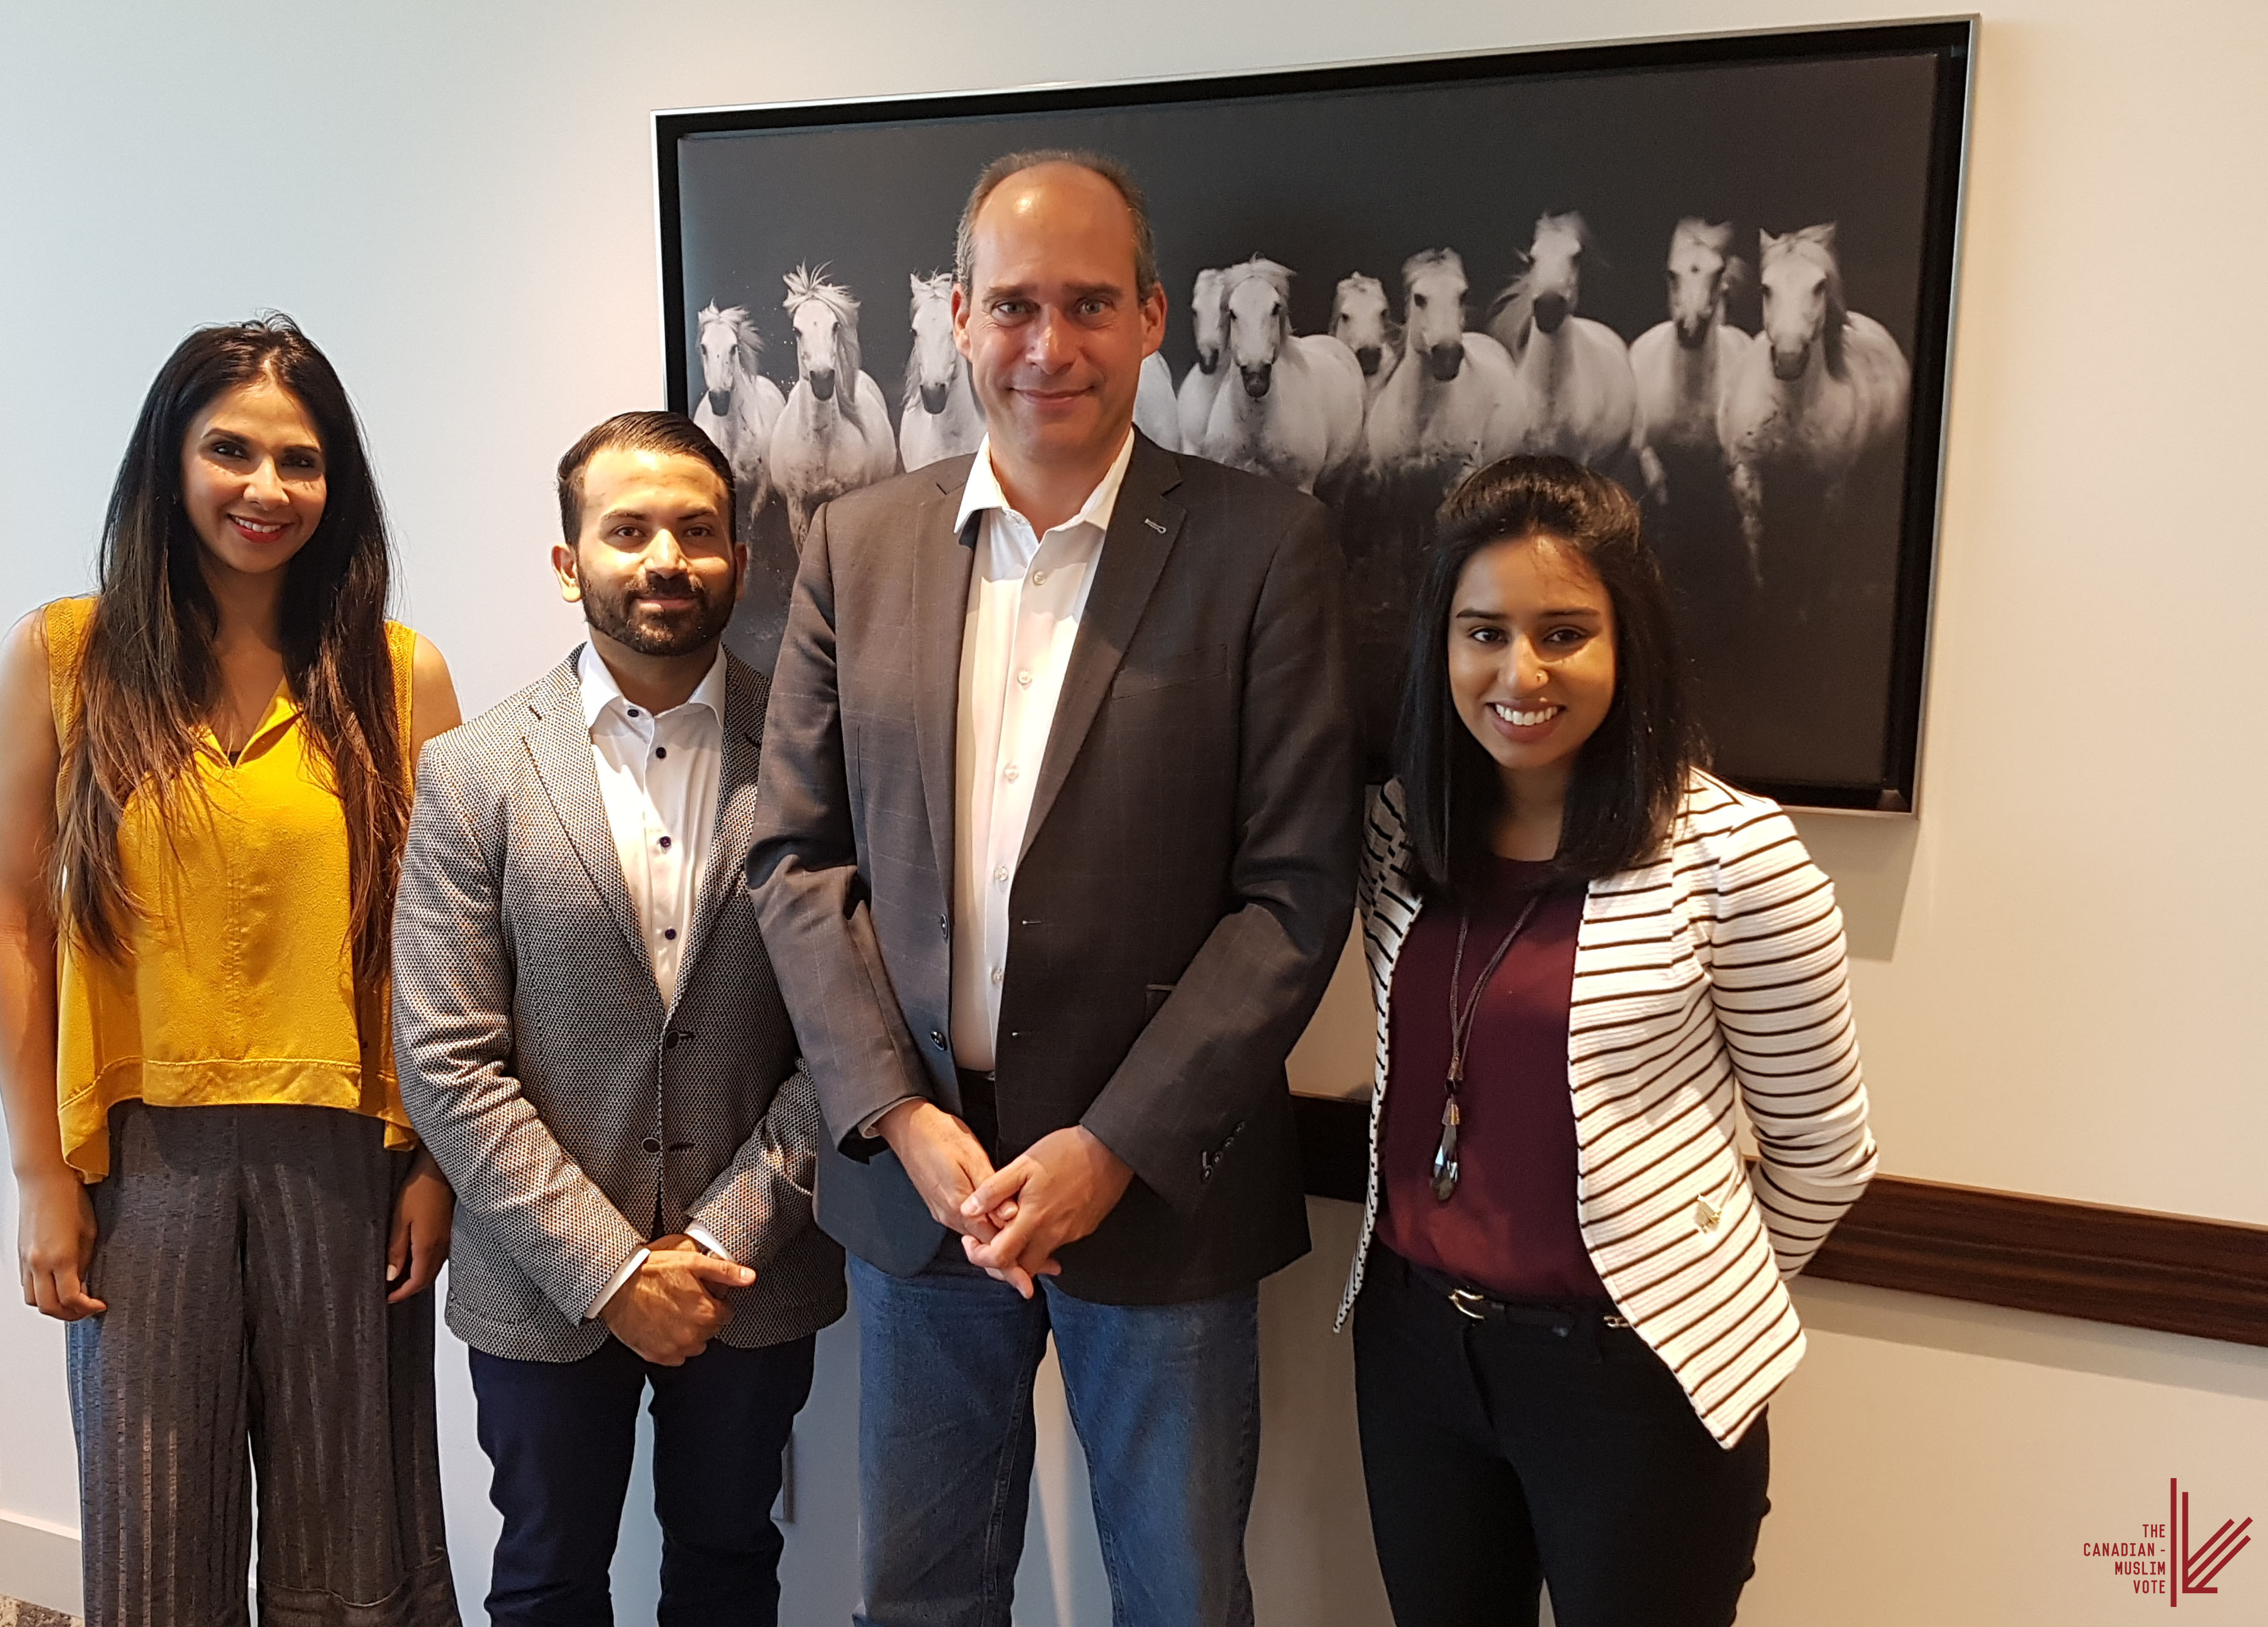 Left to Right: Muneeza Sheikh (Director of Communications), Ali Ladha (Volunteer), Guy Caron (MP) and Mariam Rajabali (Communications and Project Coordinator)